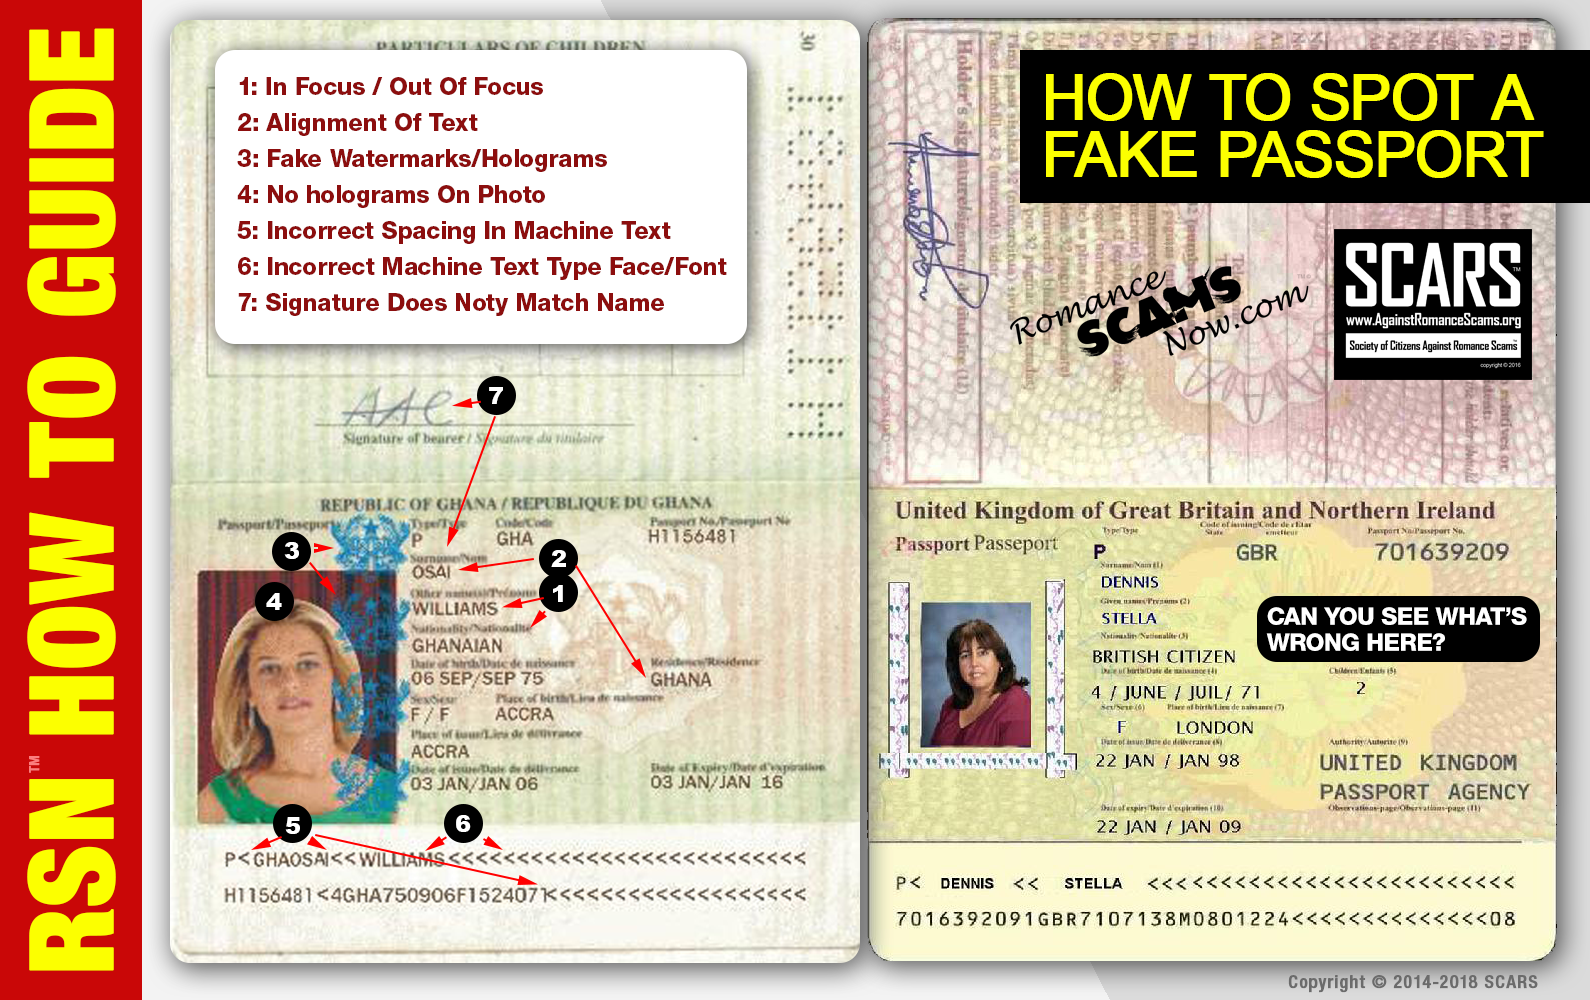 Guide-to-spotting-a-fake-passport